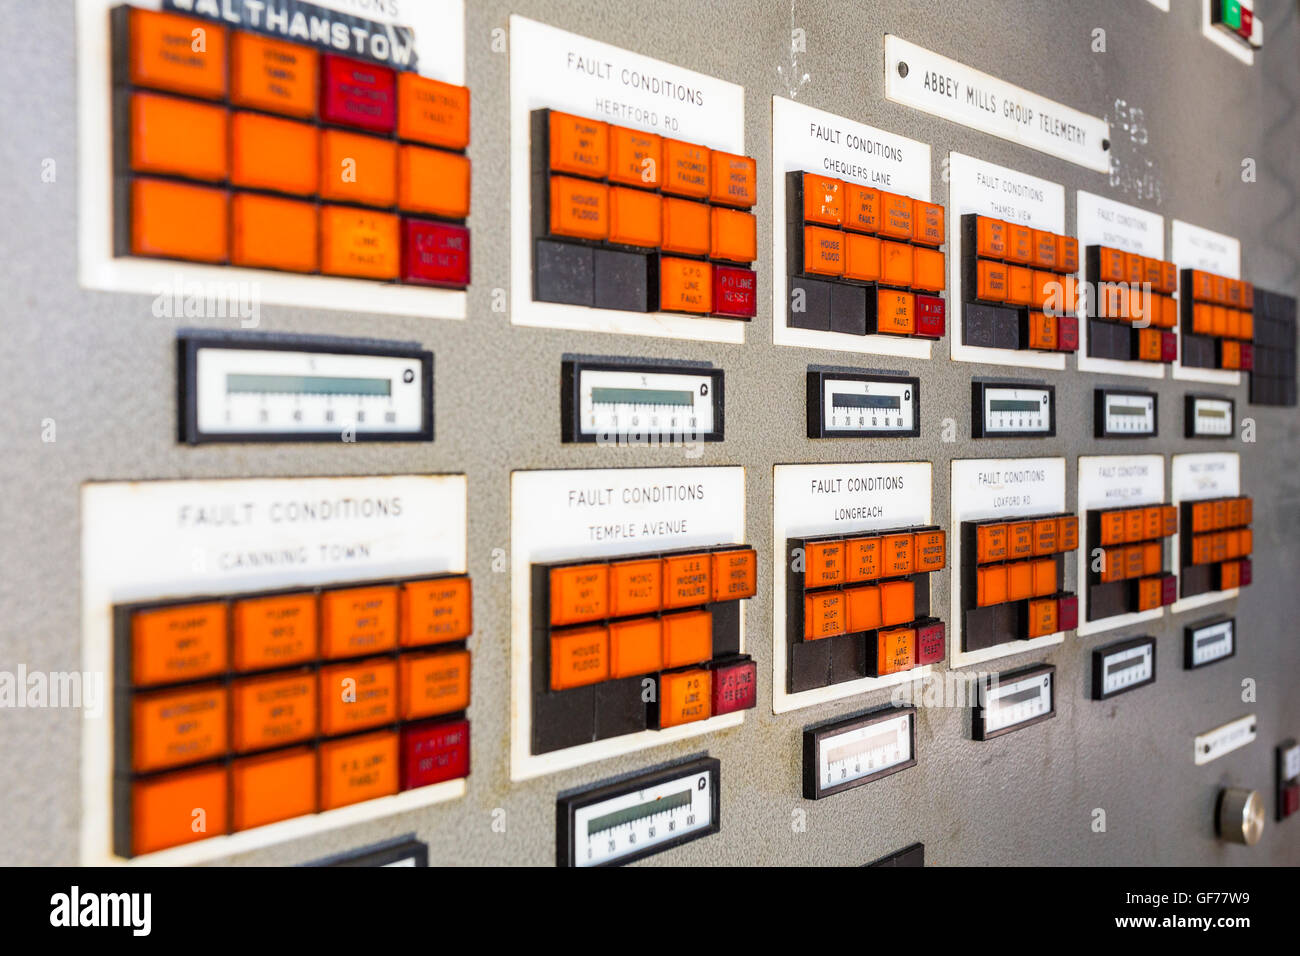 Control panels, Abbey Mills Pumping Station, London, England, United Kingdom - Stock Image